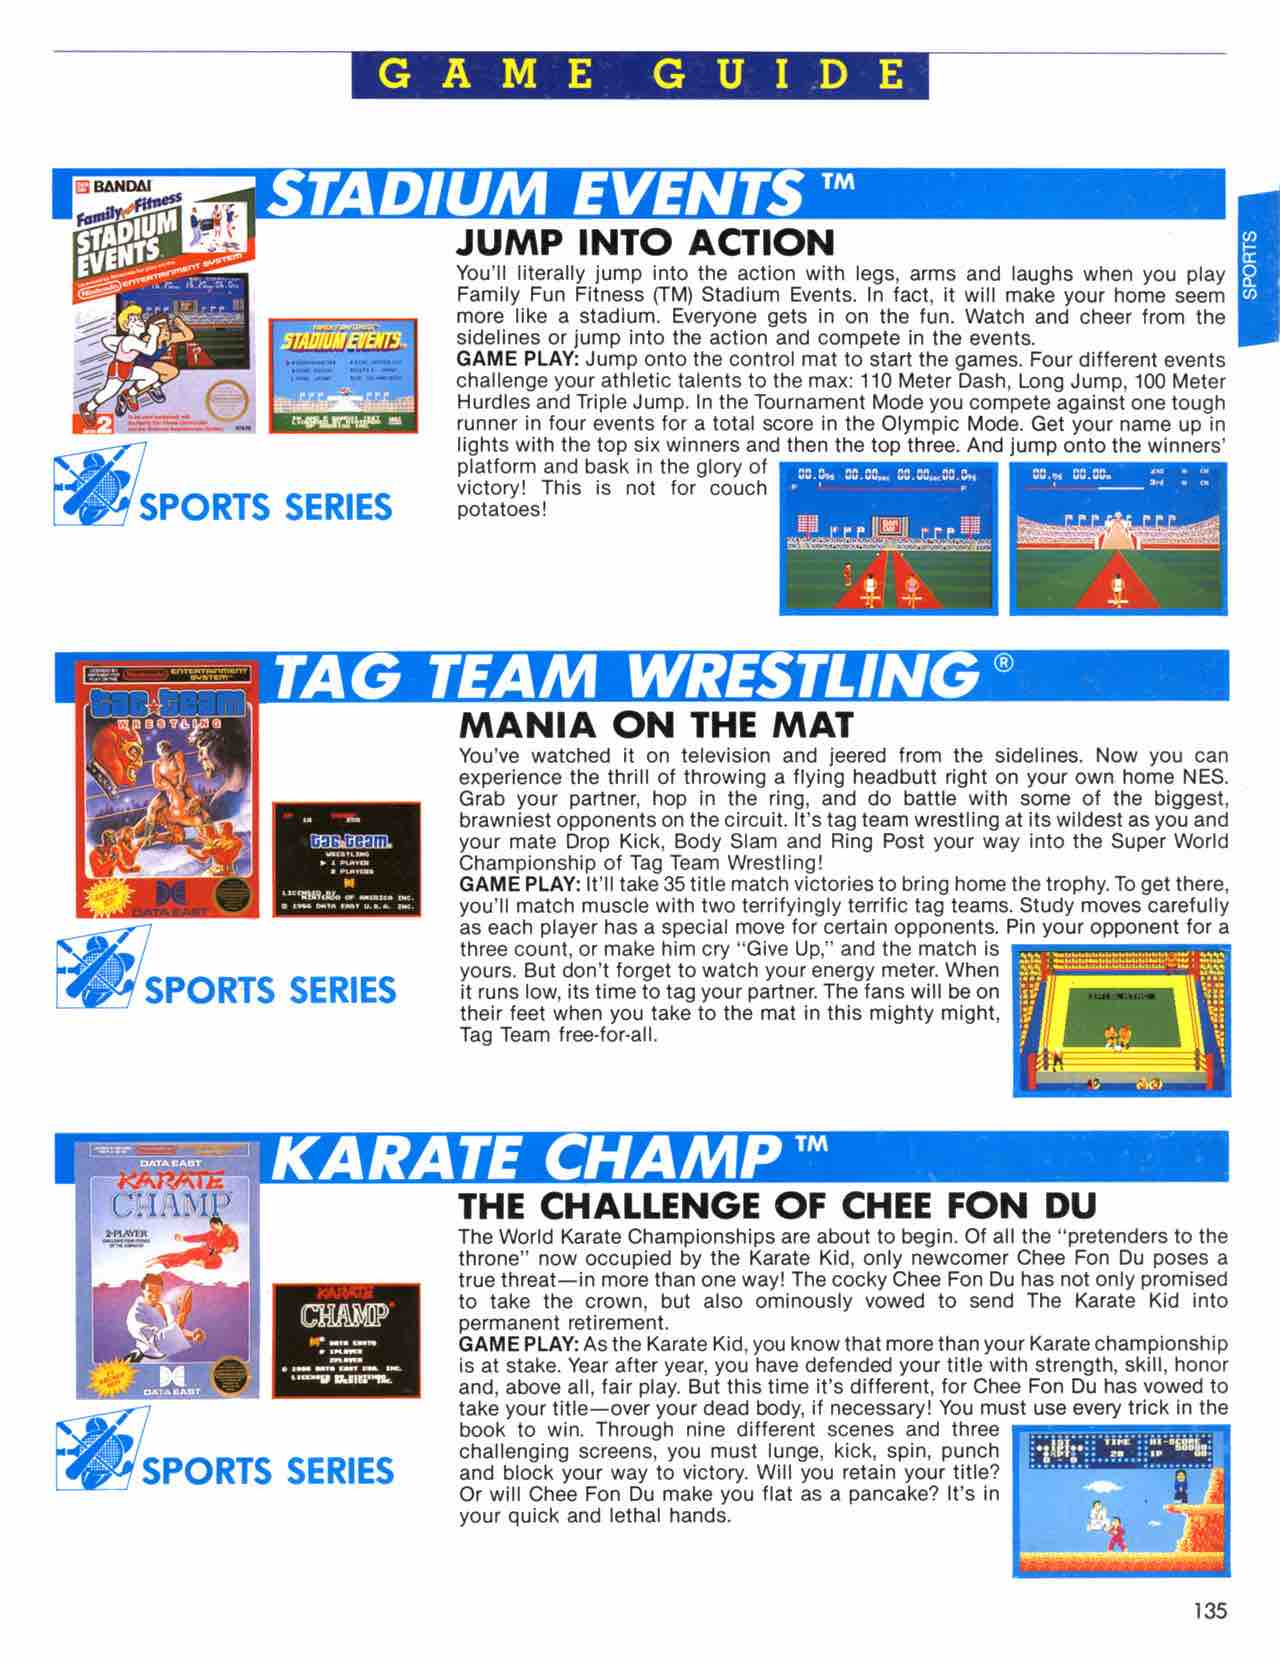 Official Nintendo Player's Guide Pg 135